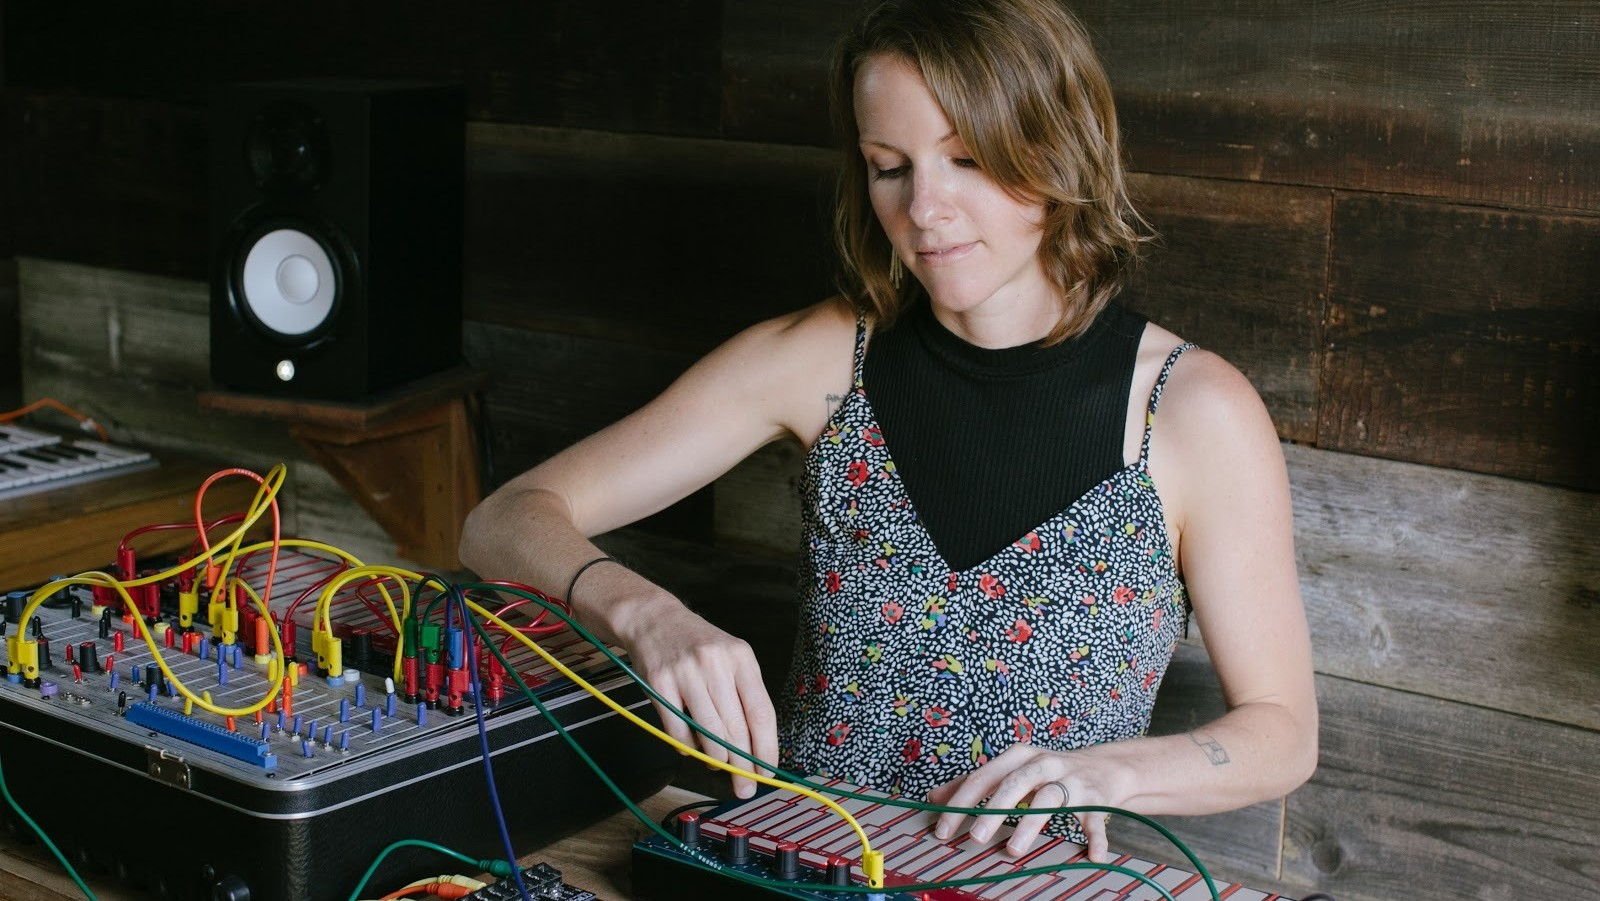 Join Kaitlyn Aurelia Smith on a Seriously Trippy Excursion to the Moon and Back with This Roger Goula Remix